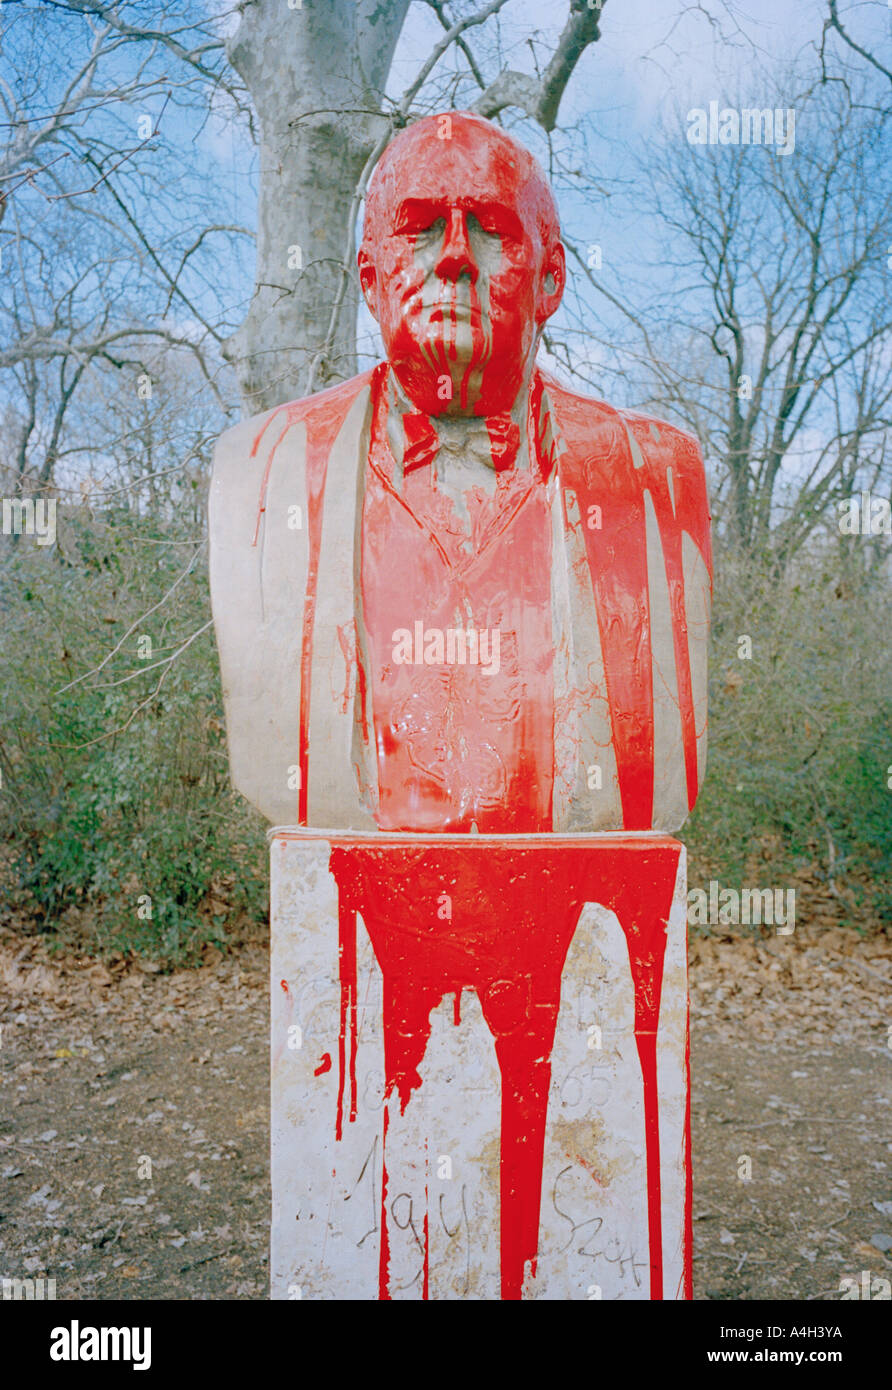 Statue of Winston Churchill daubed with red paint in Budabest, Hungary. - Stock Image